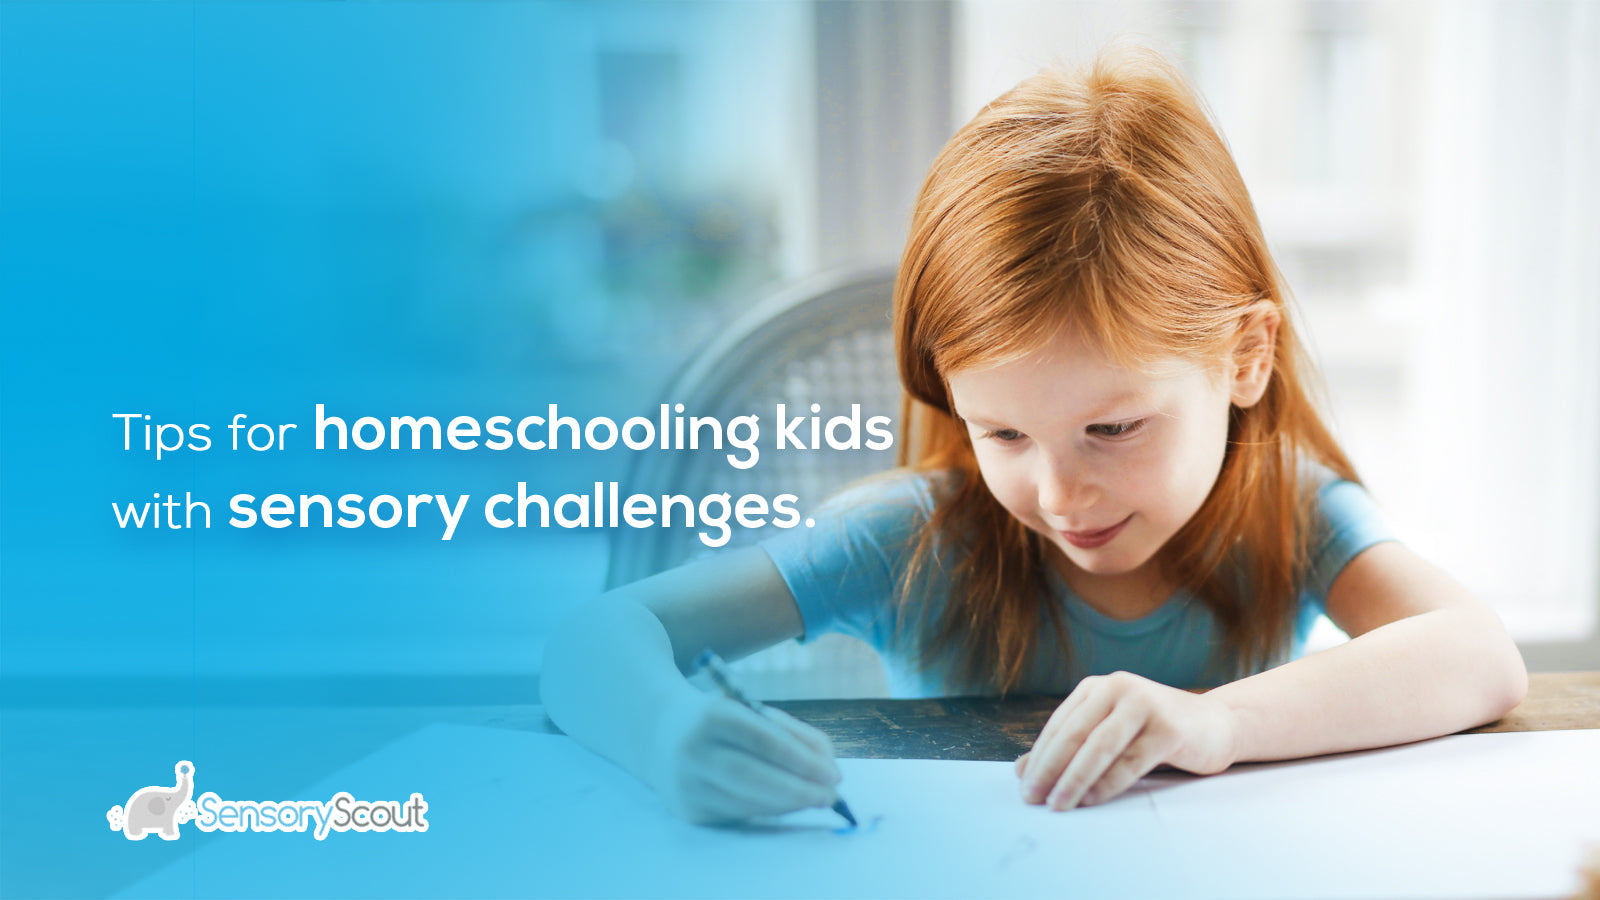 Tips For Homeschooling Kids With Sensory Challenges